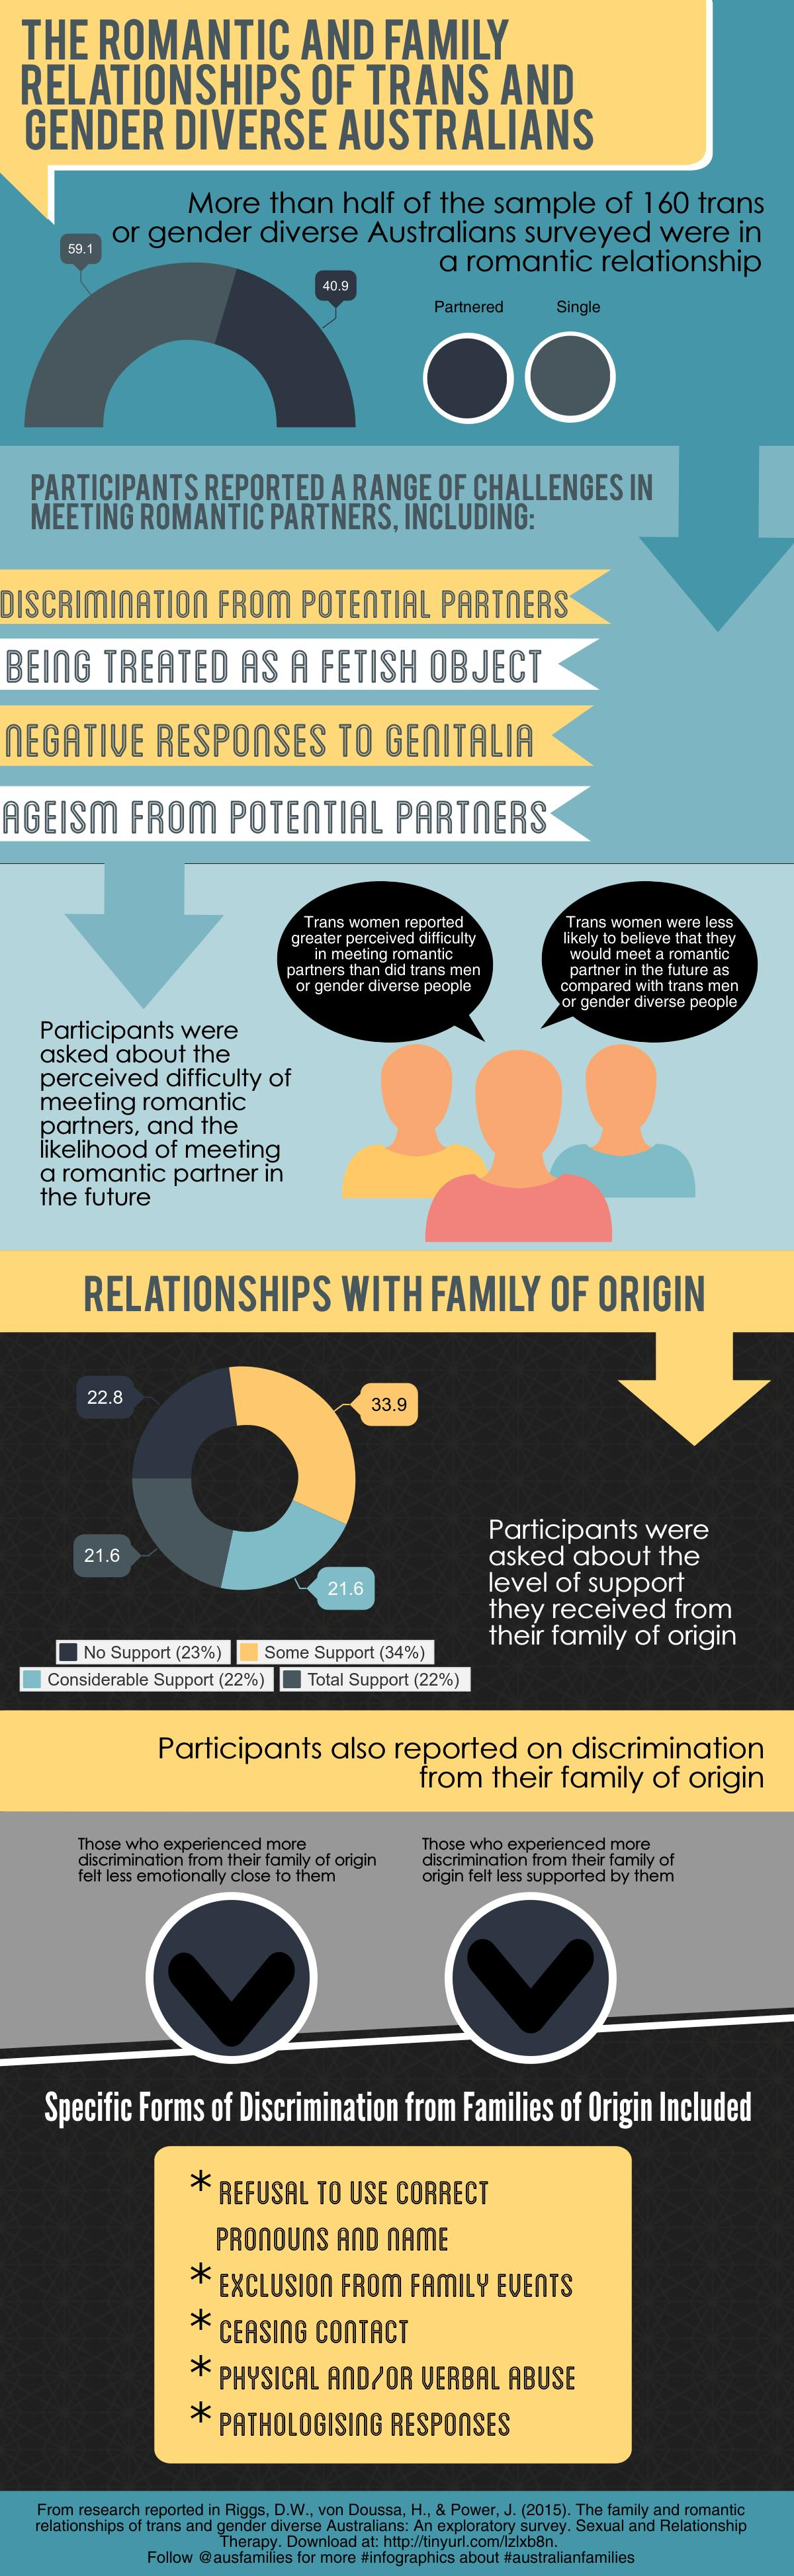 Trans-Gender-Diverse-Relationships Australia